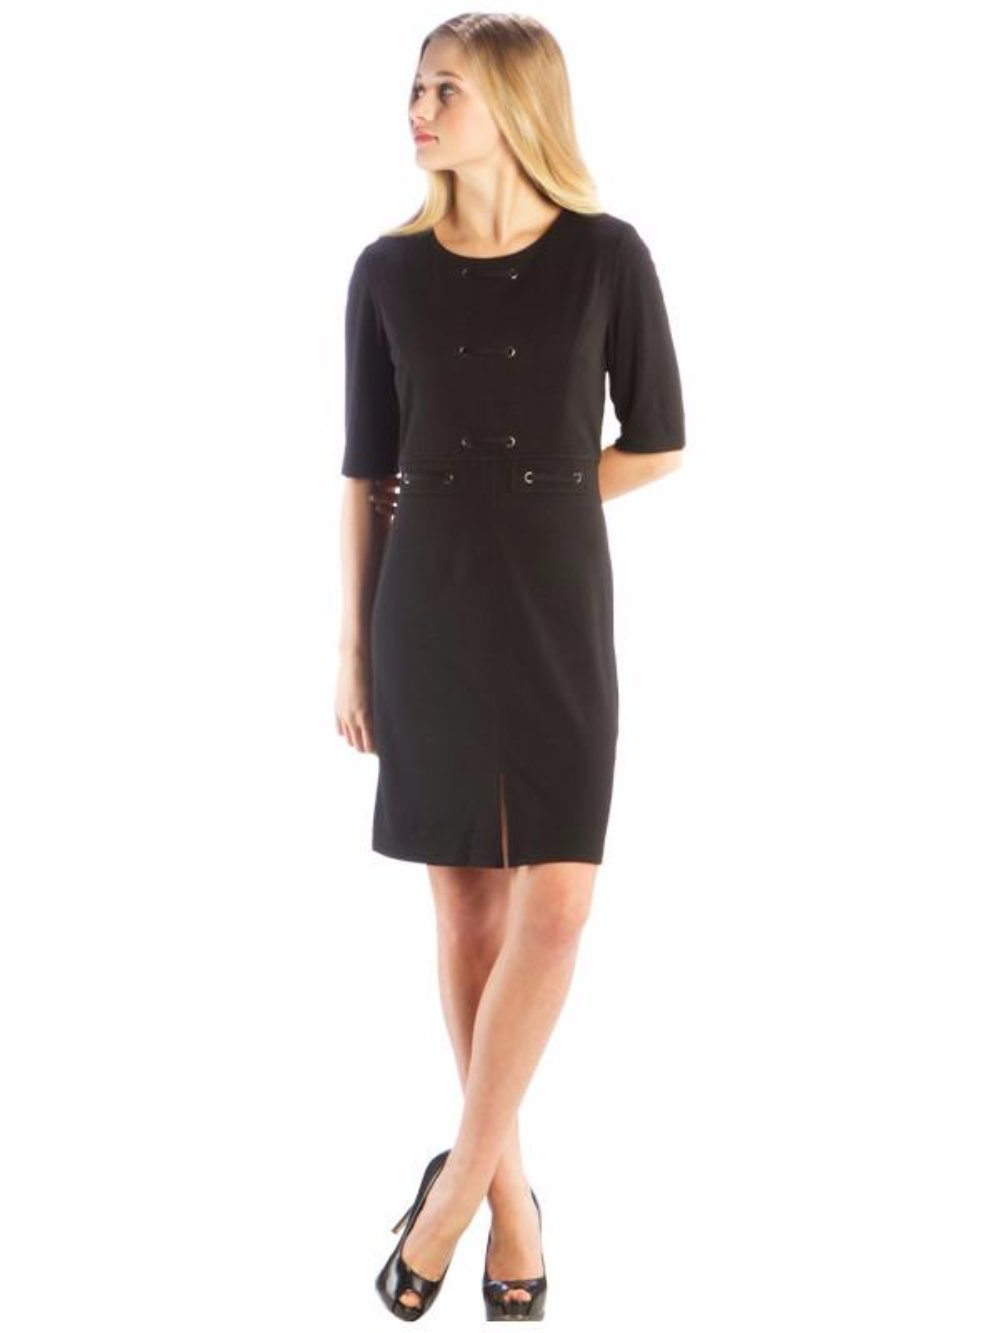 Laced Grommet Dress